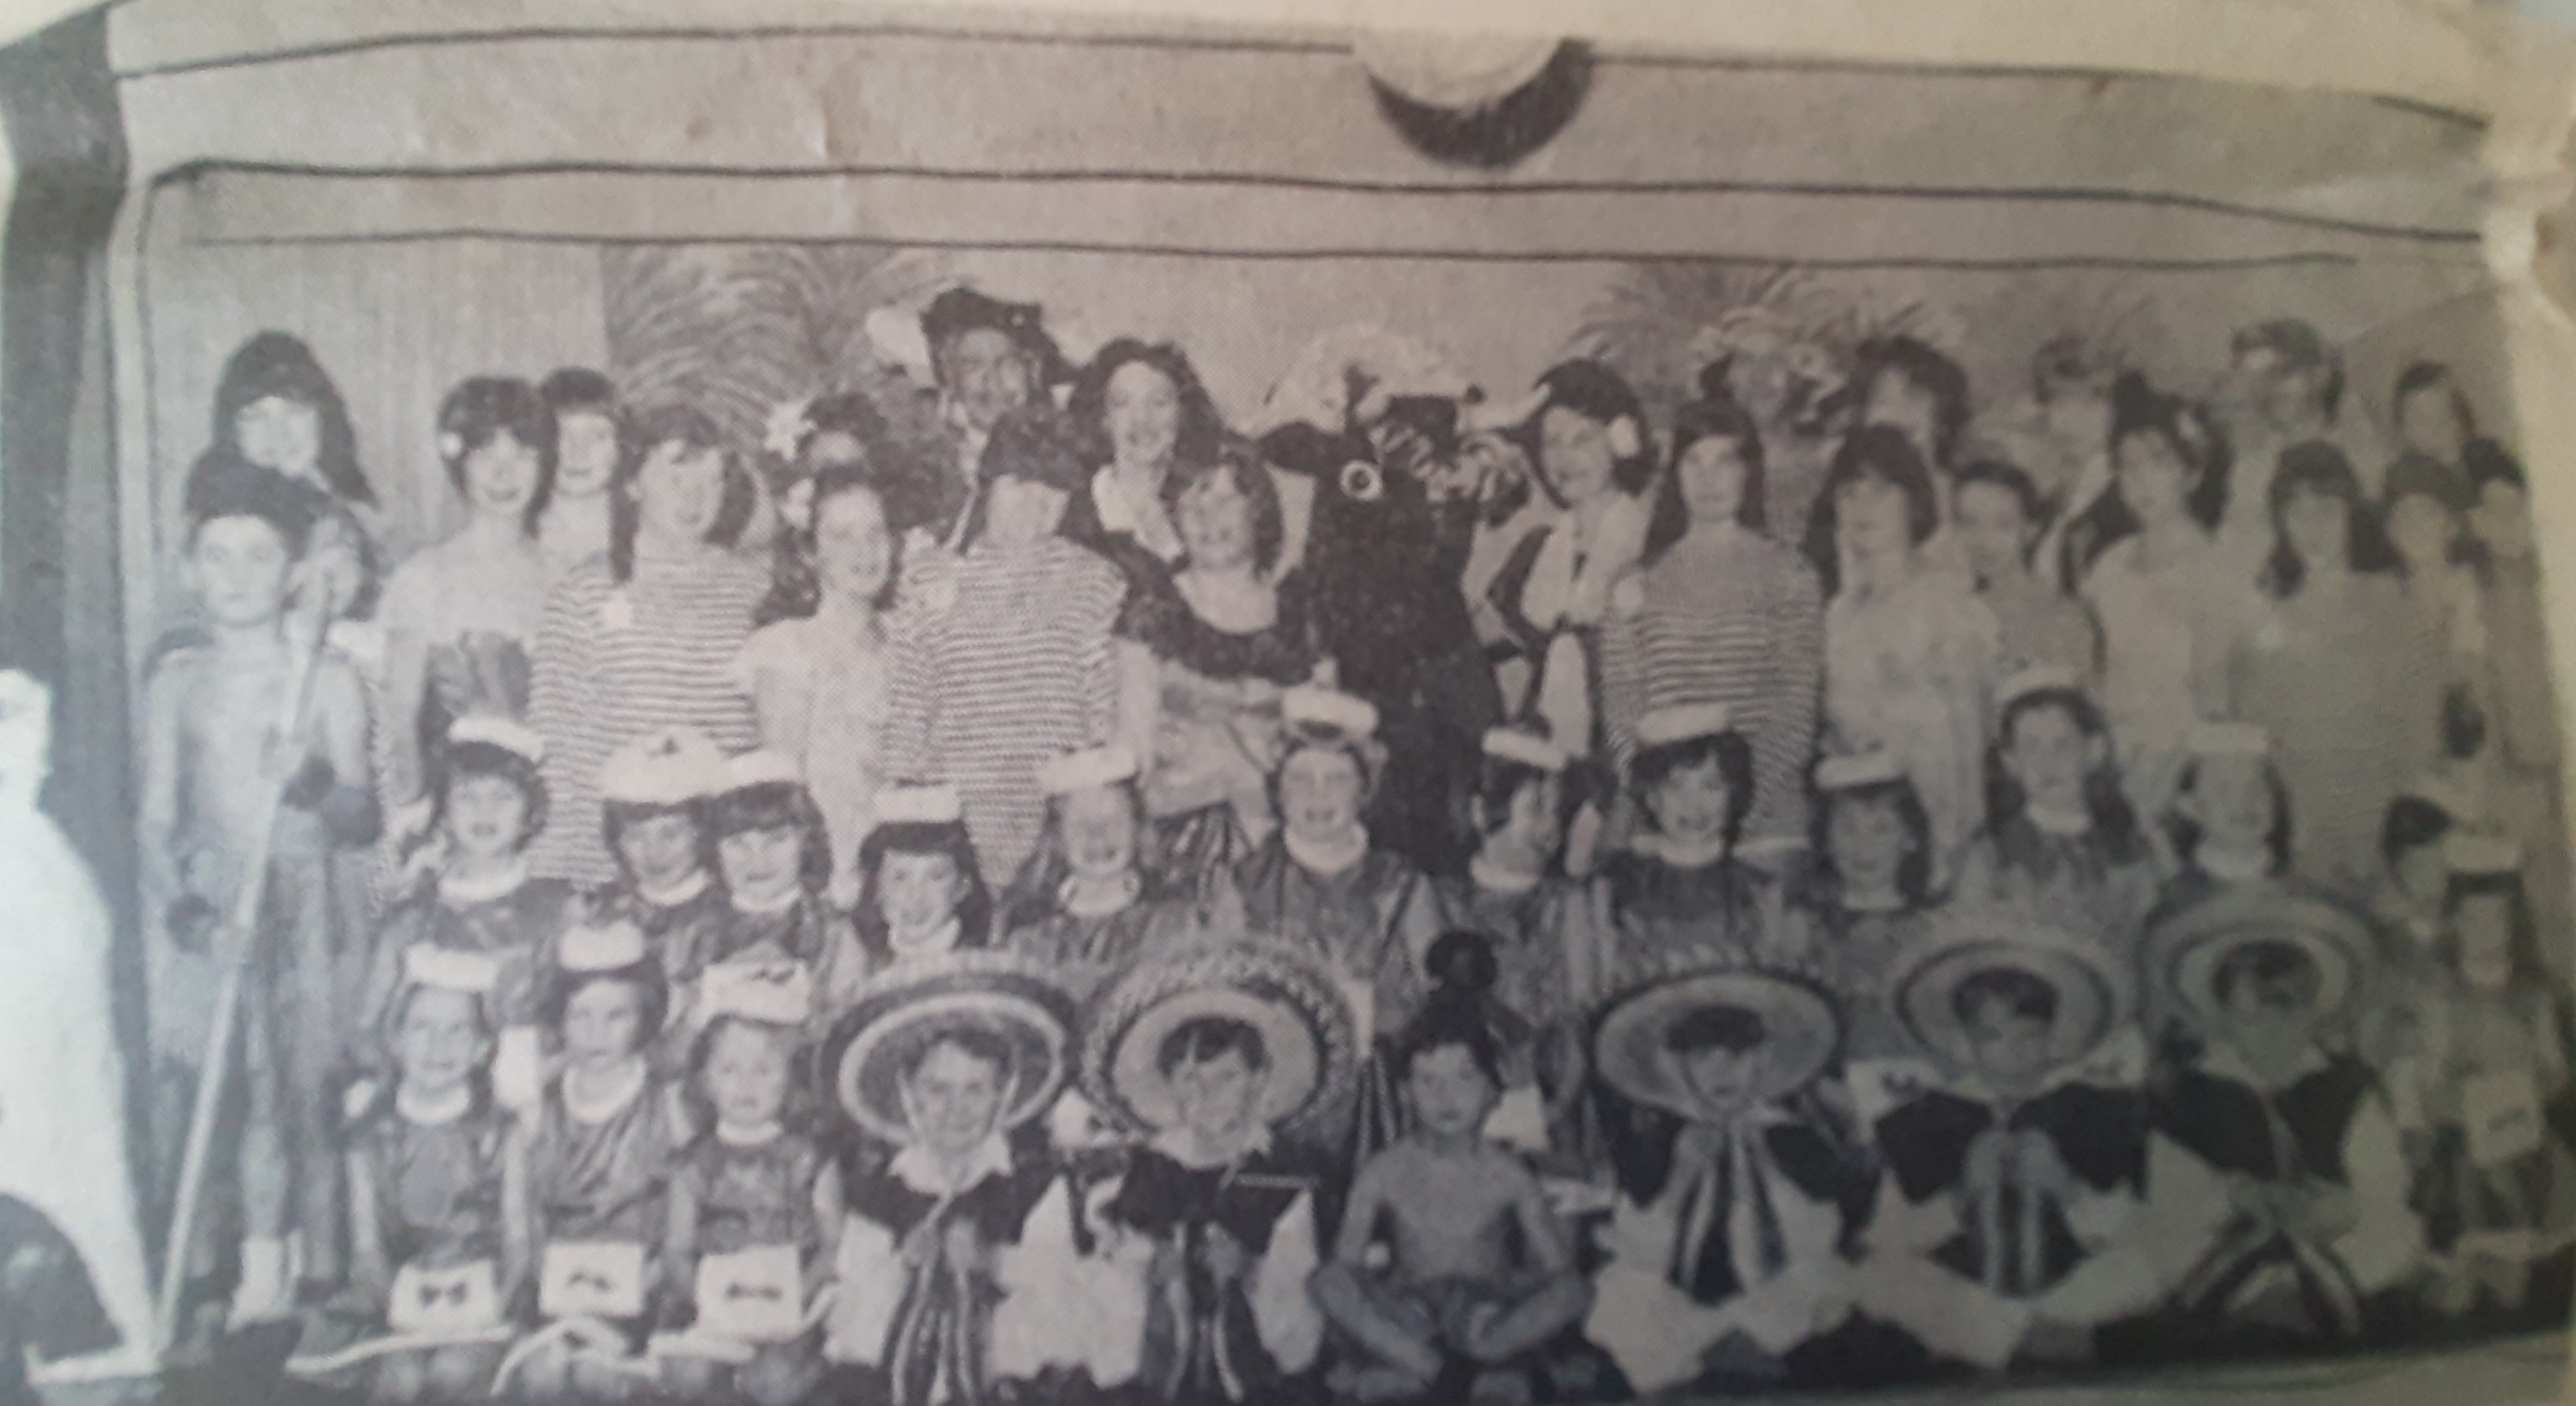 Newspaper photograph of the cast of Robinson Crusoe, 1966